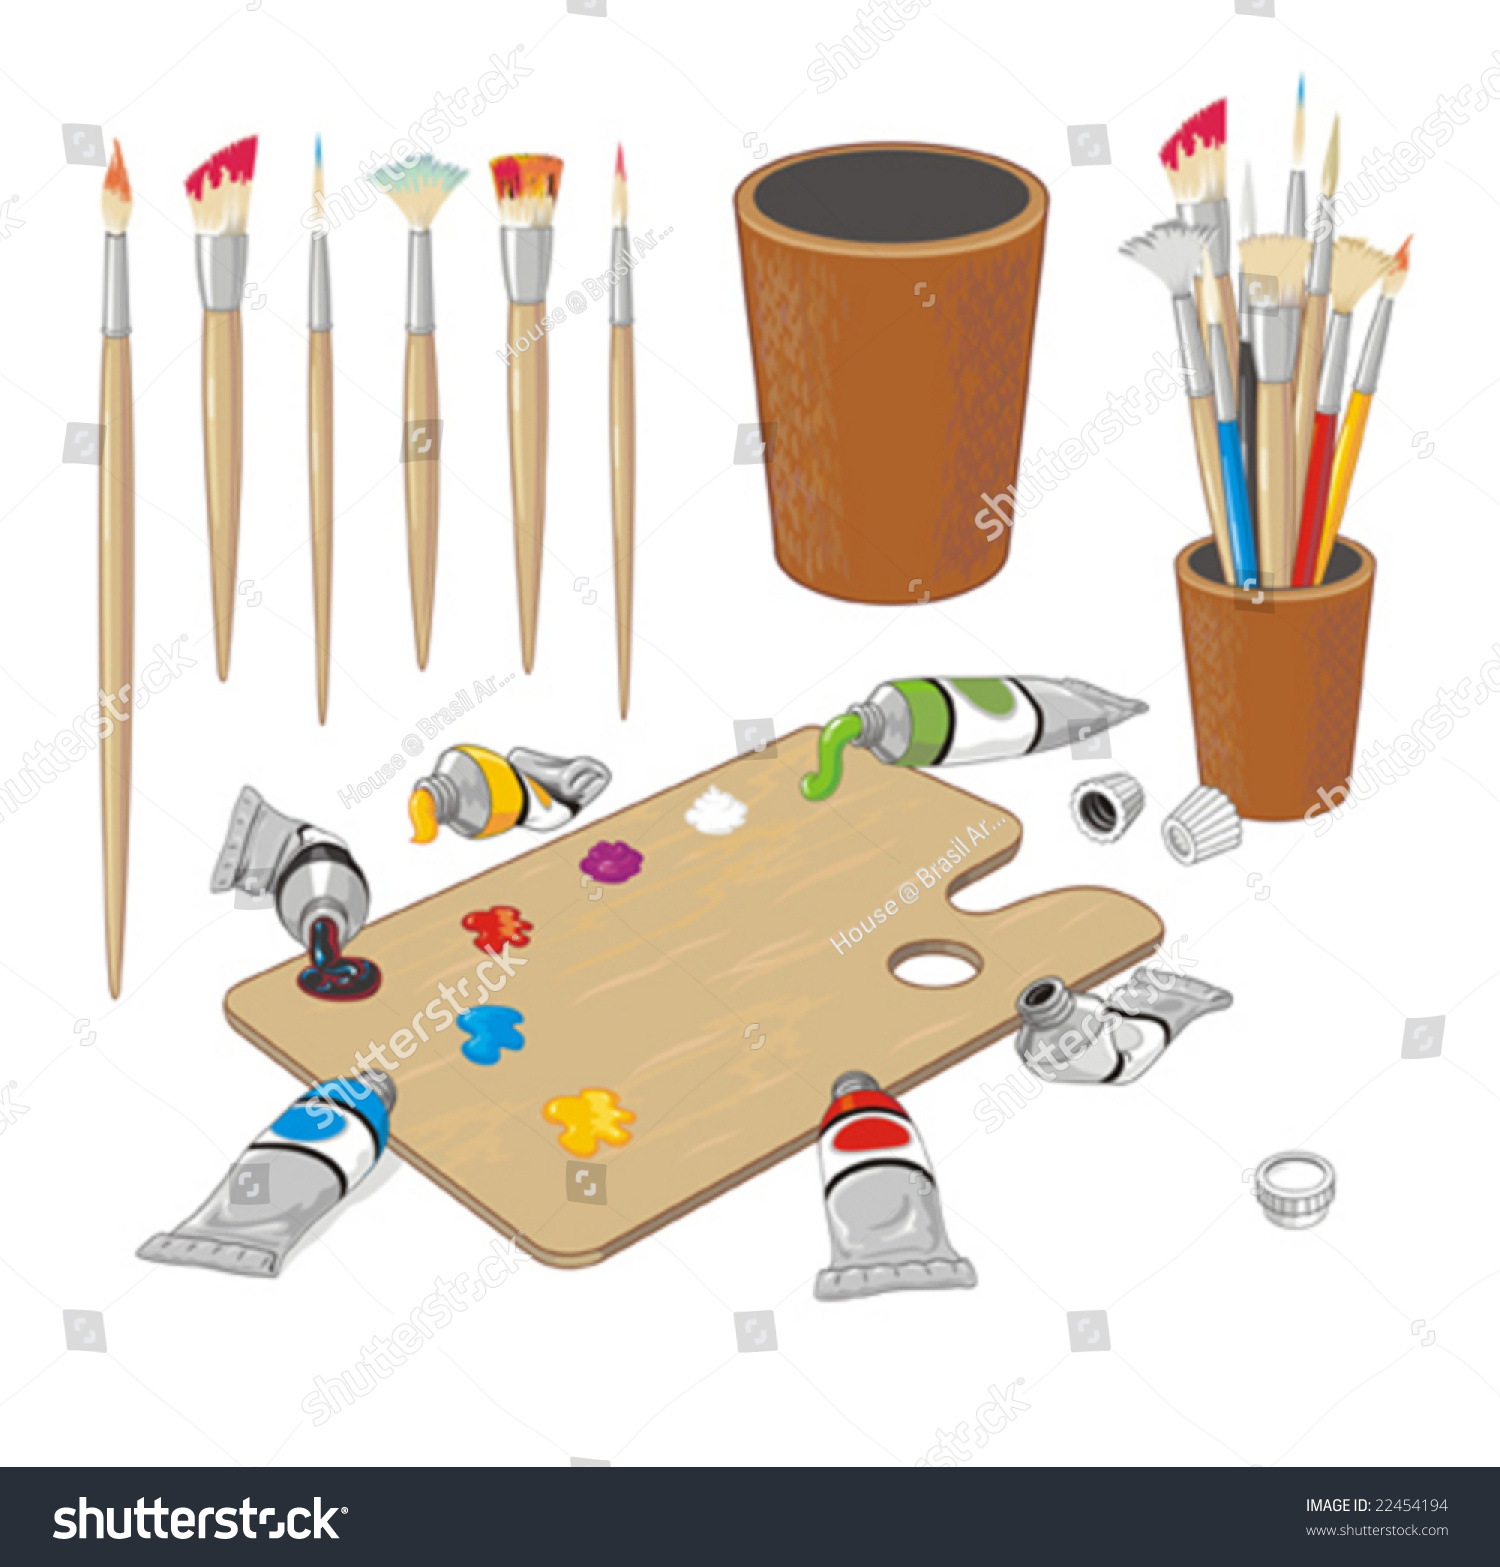 Clip Art Collection With Brushes, Palette, Paint Tubes And ...